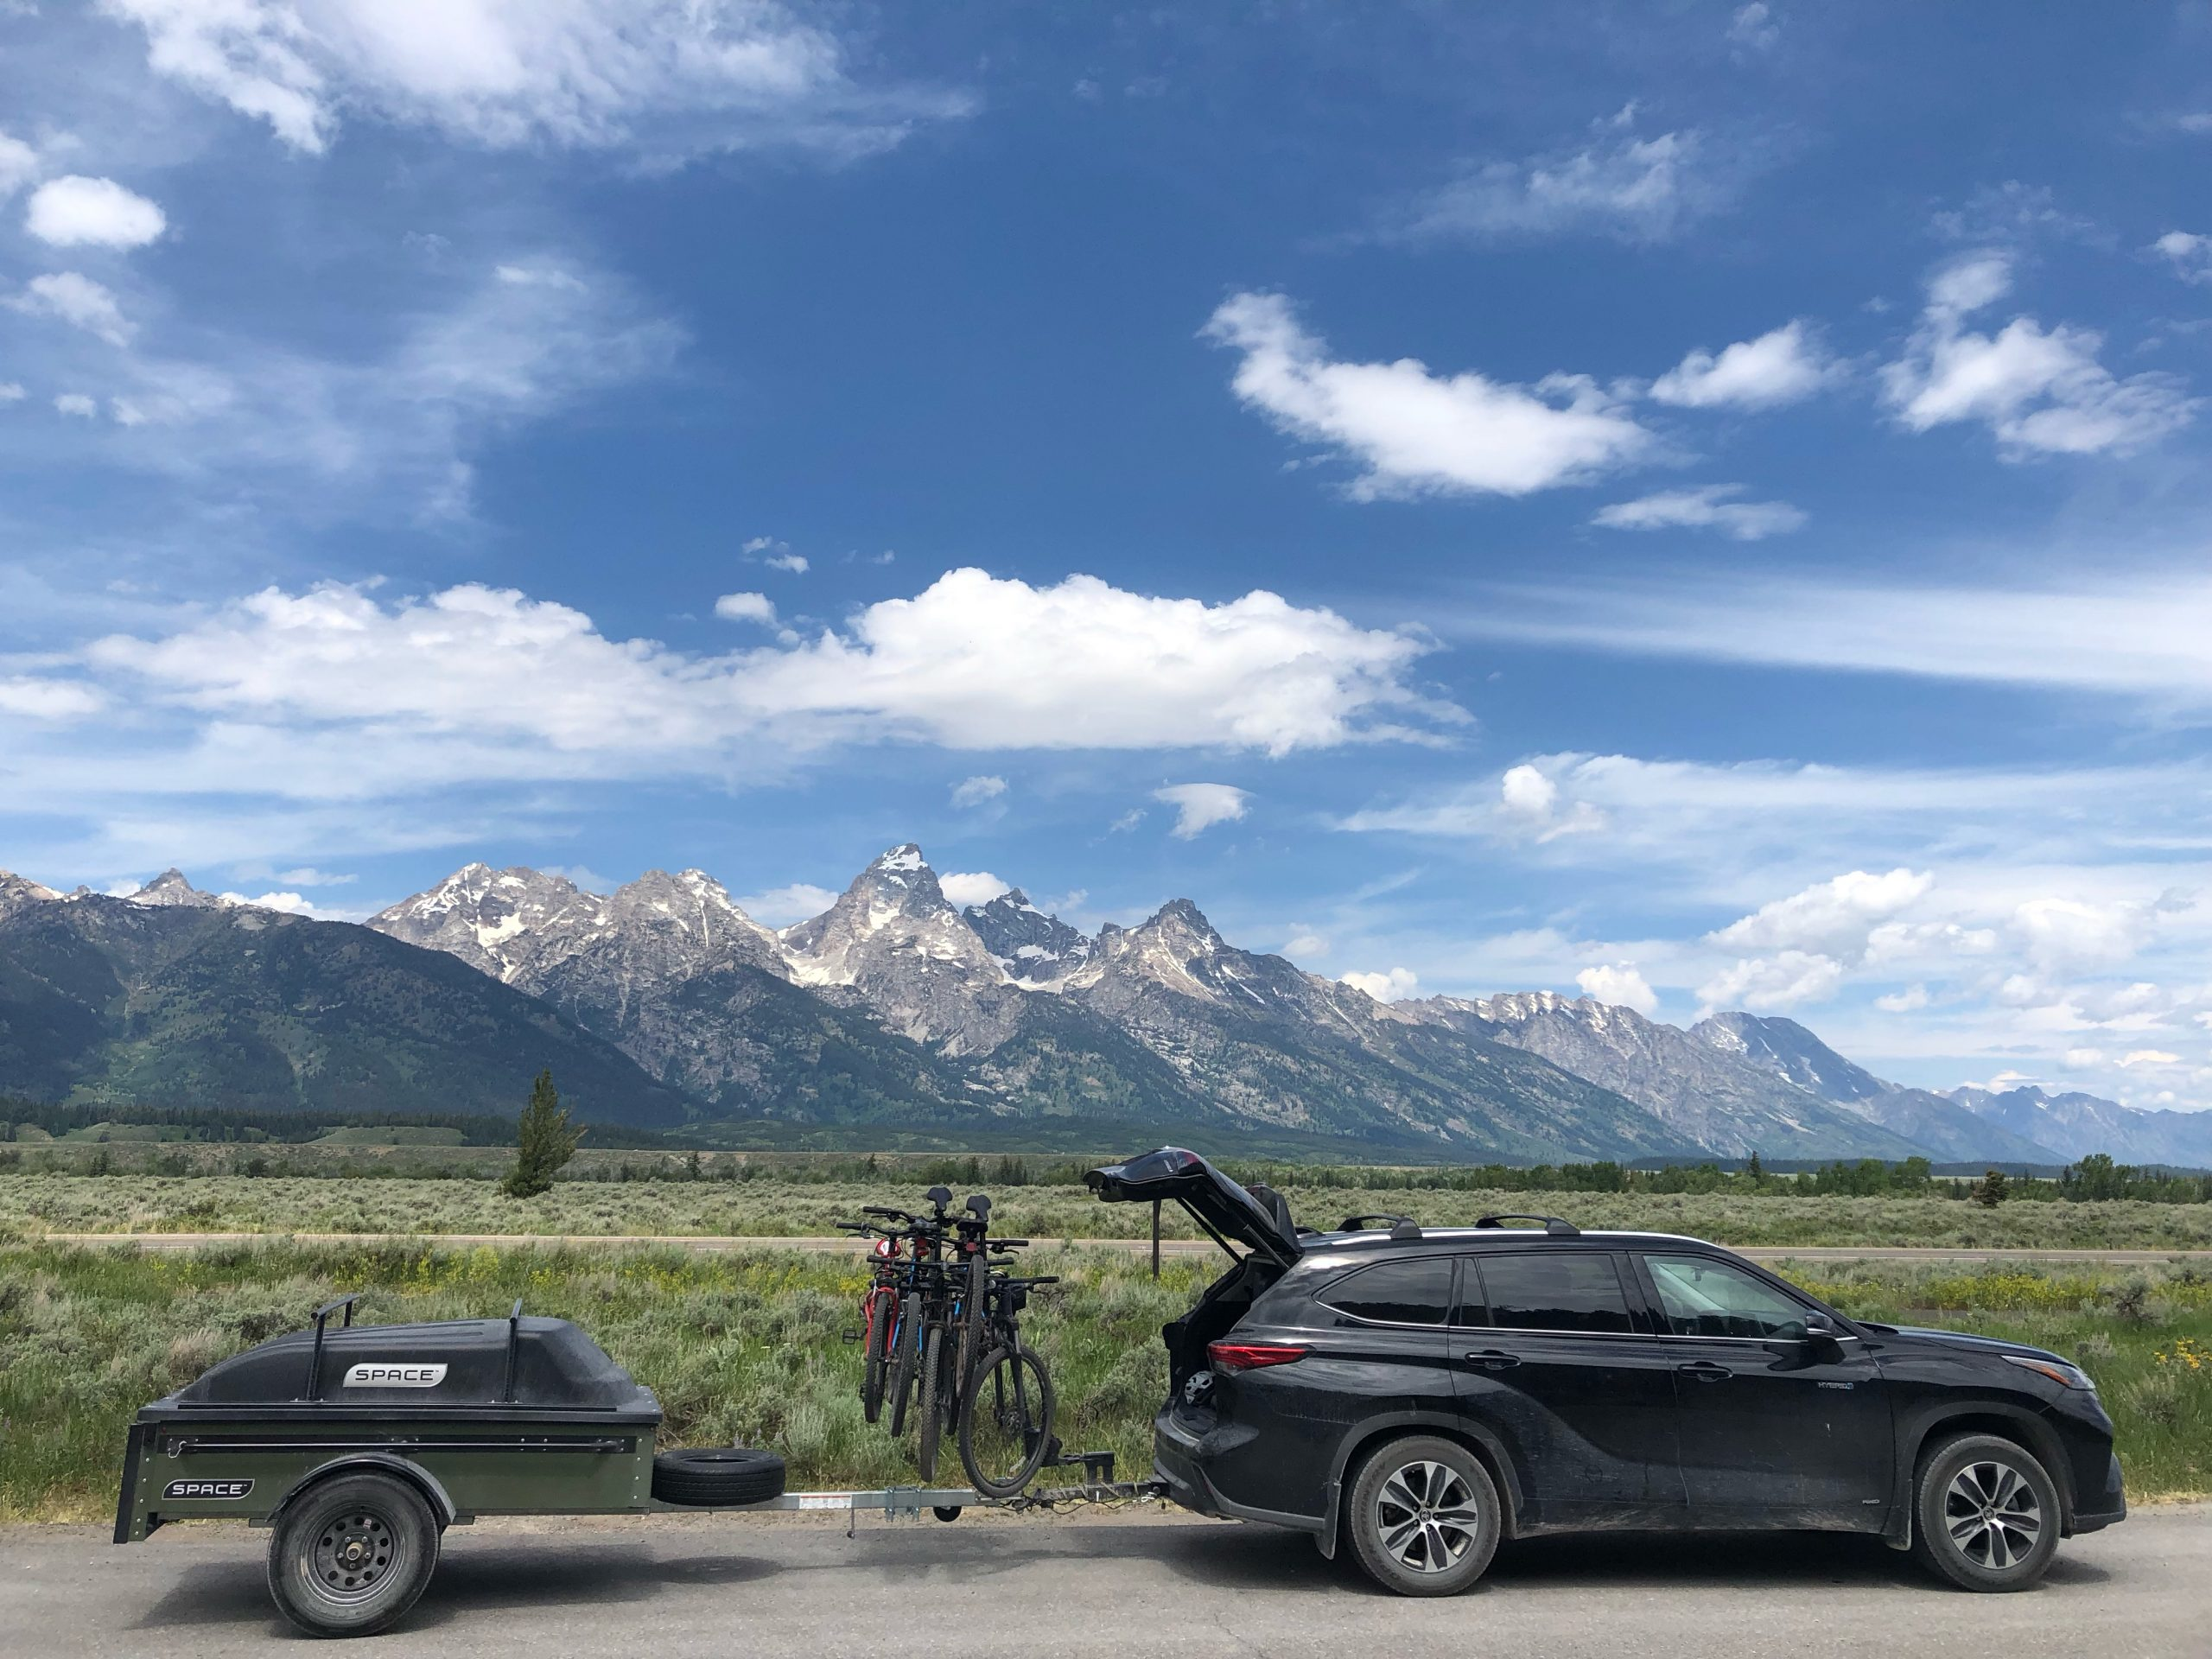 Adventure Space Trailer in Mountains